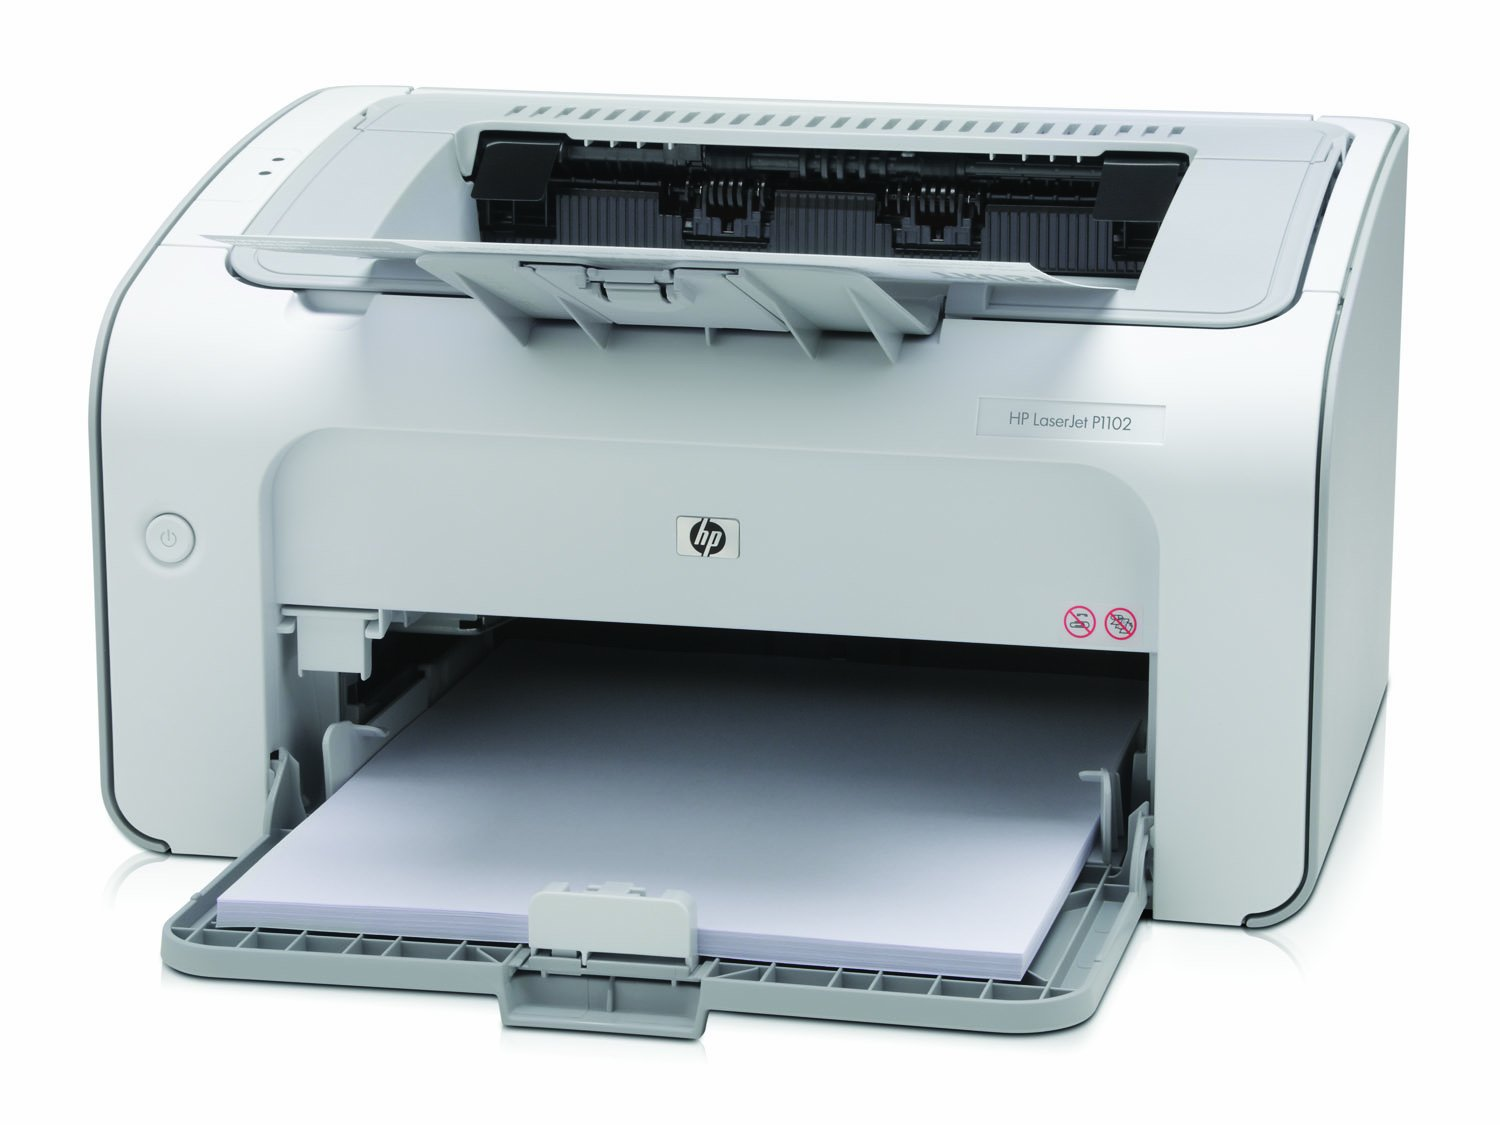 Download driver) hp laserjet p1102 driver download for free.